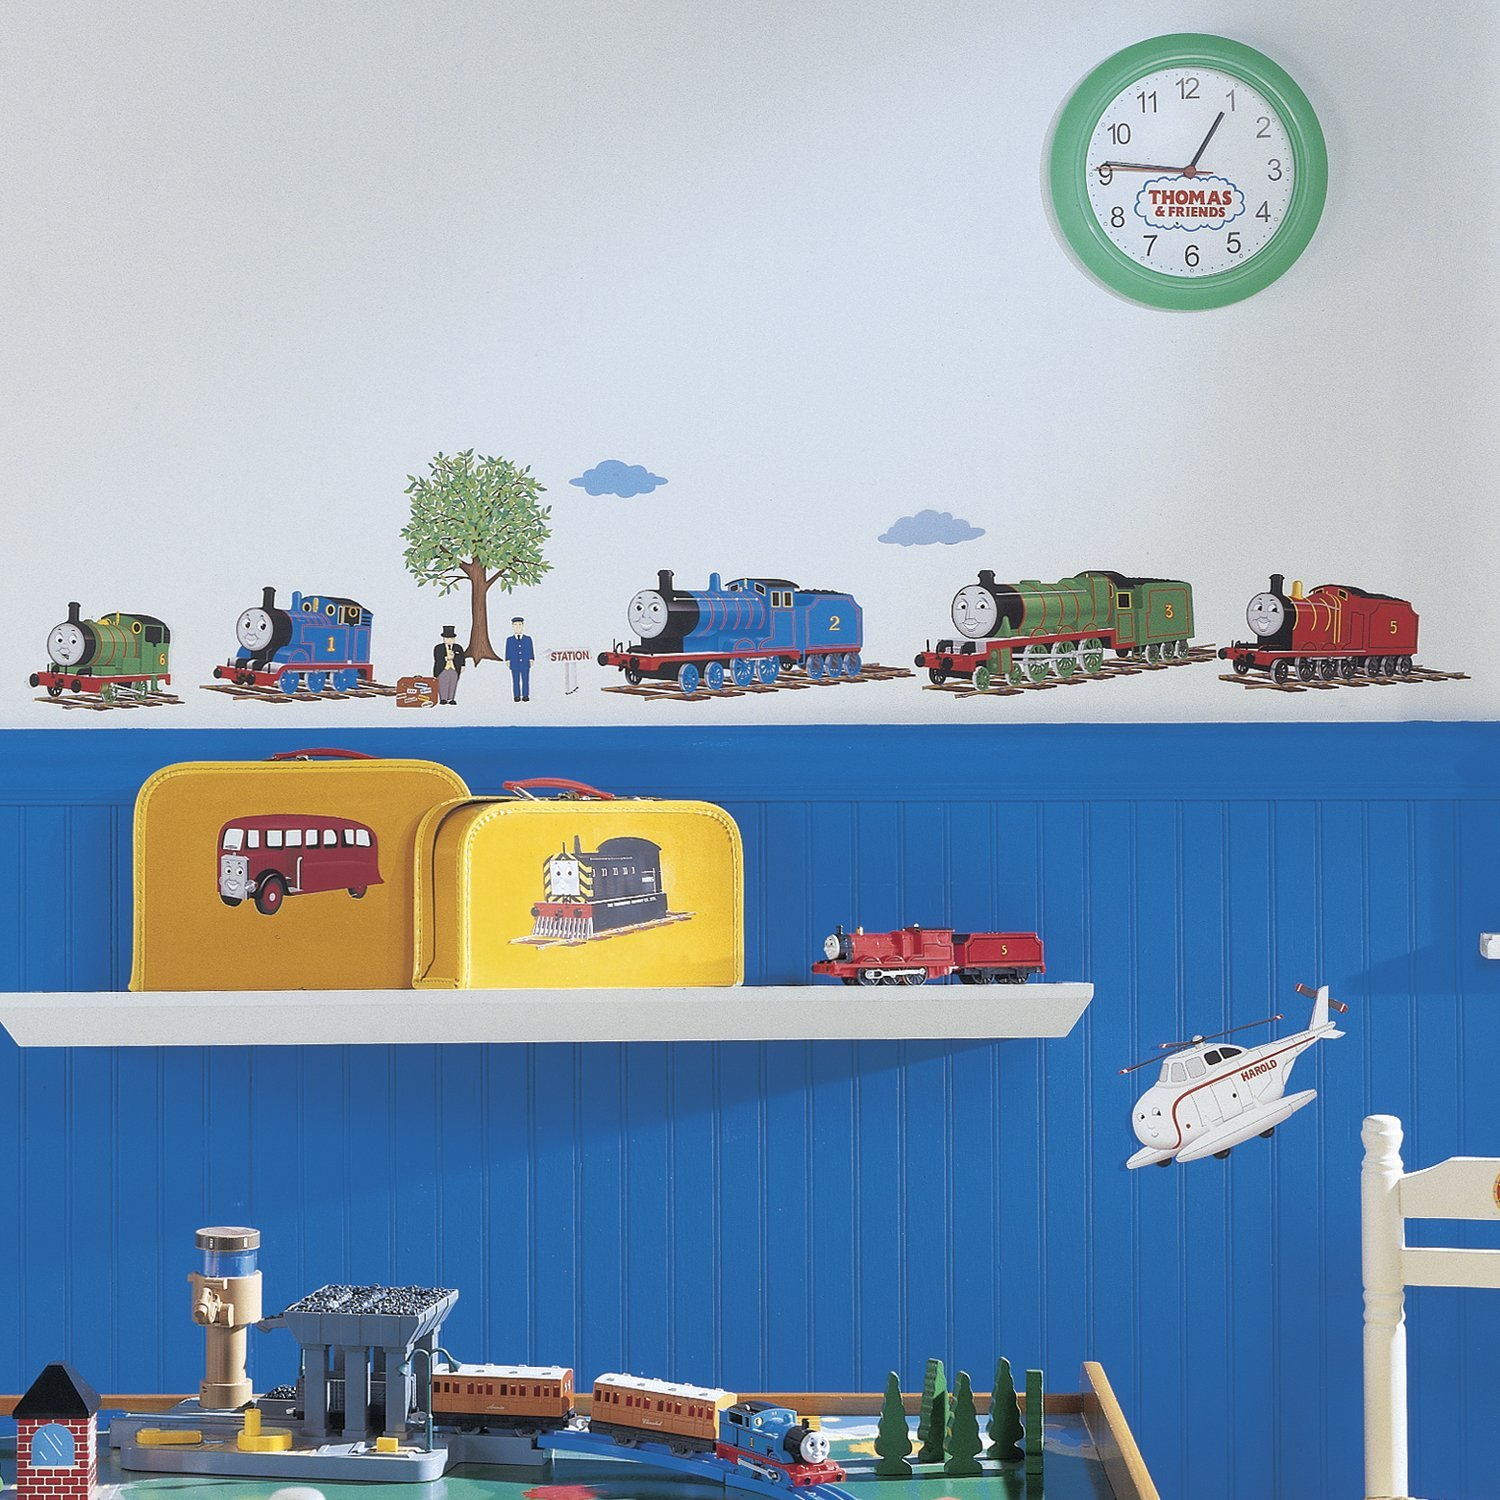 thomas the tank engine and friends peel and stick wall. Black Bedroom Furniture Sets. Home Design Ideas